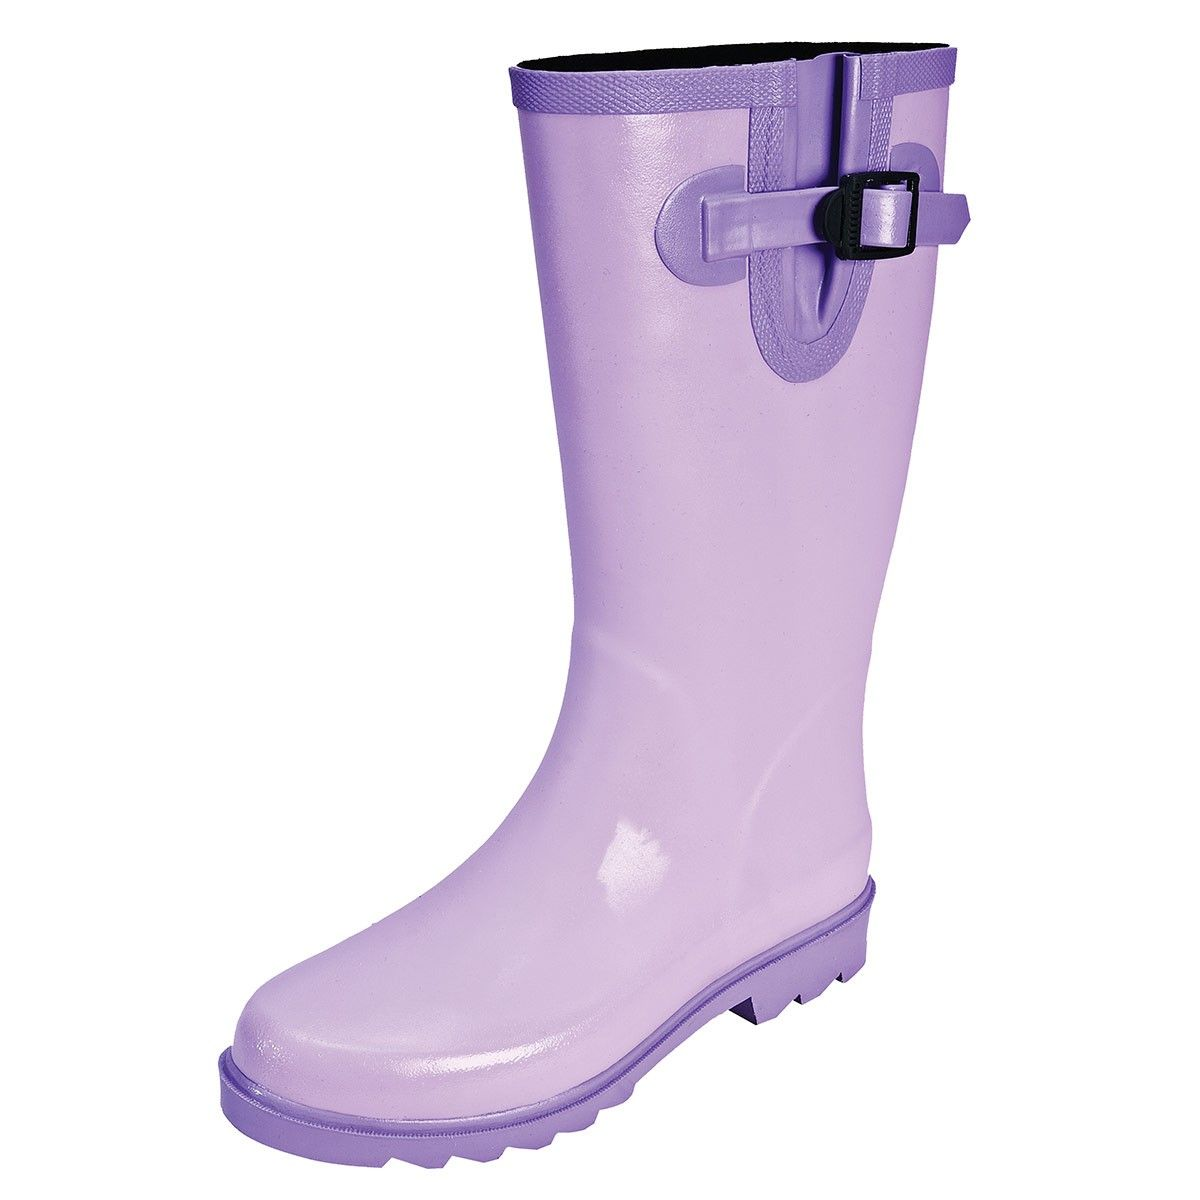 Women's Purple Rain Boots - Puddletons | Rain, Purple rain and ...